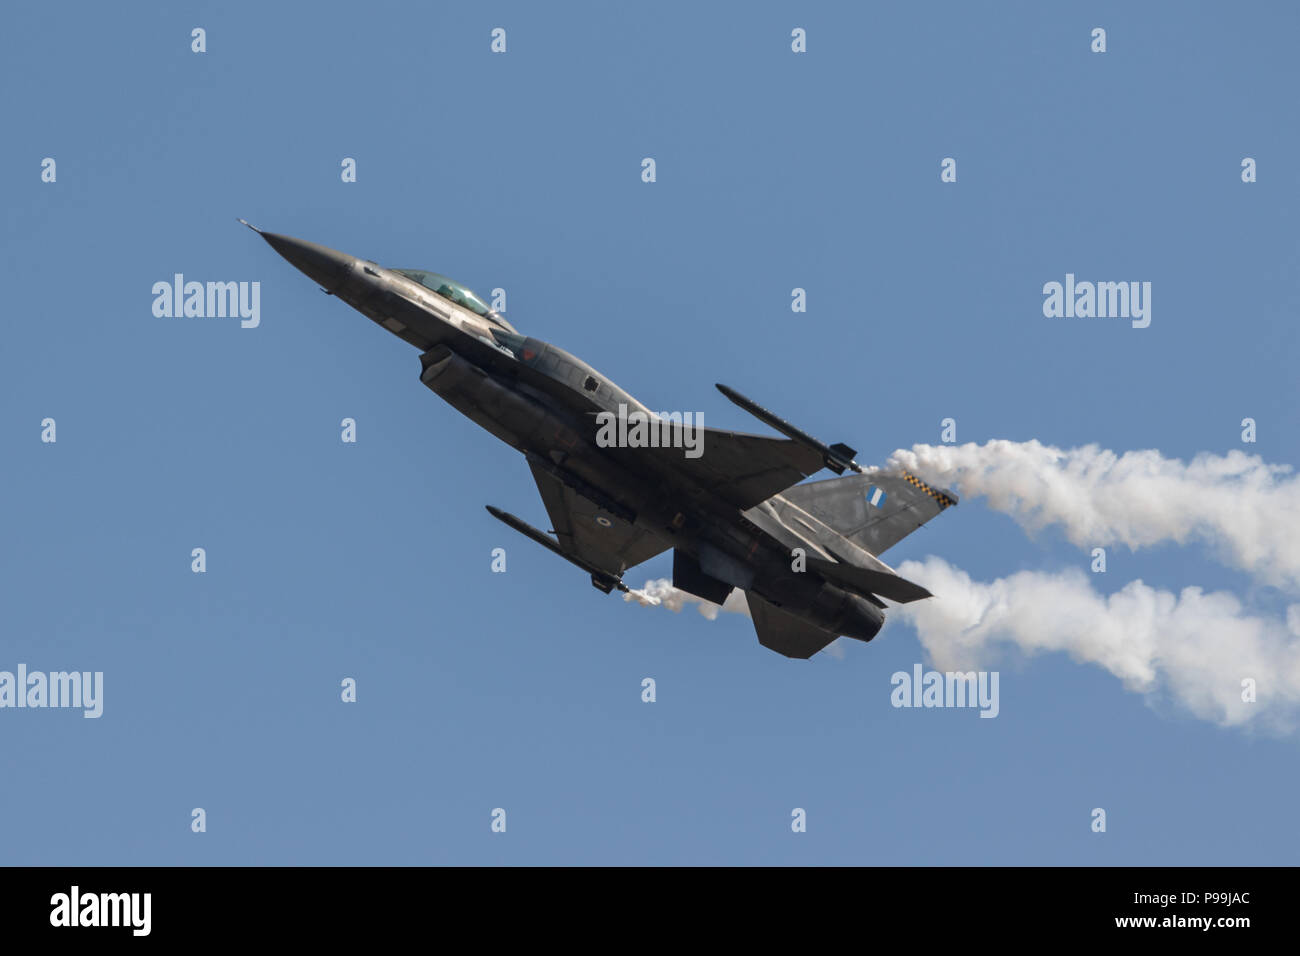 greek f16 fighting falcon at the royal international air tattoo 2018 - Stock Image